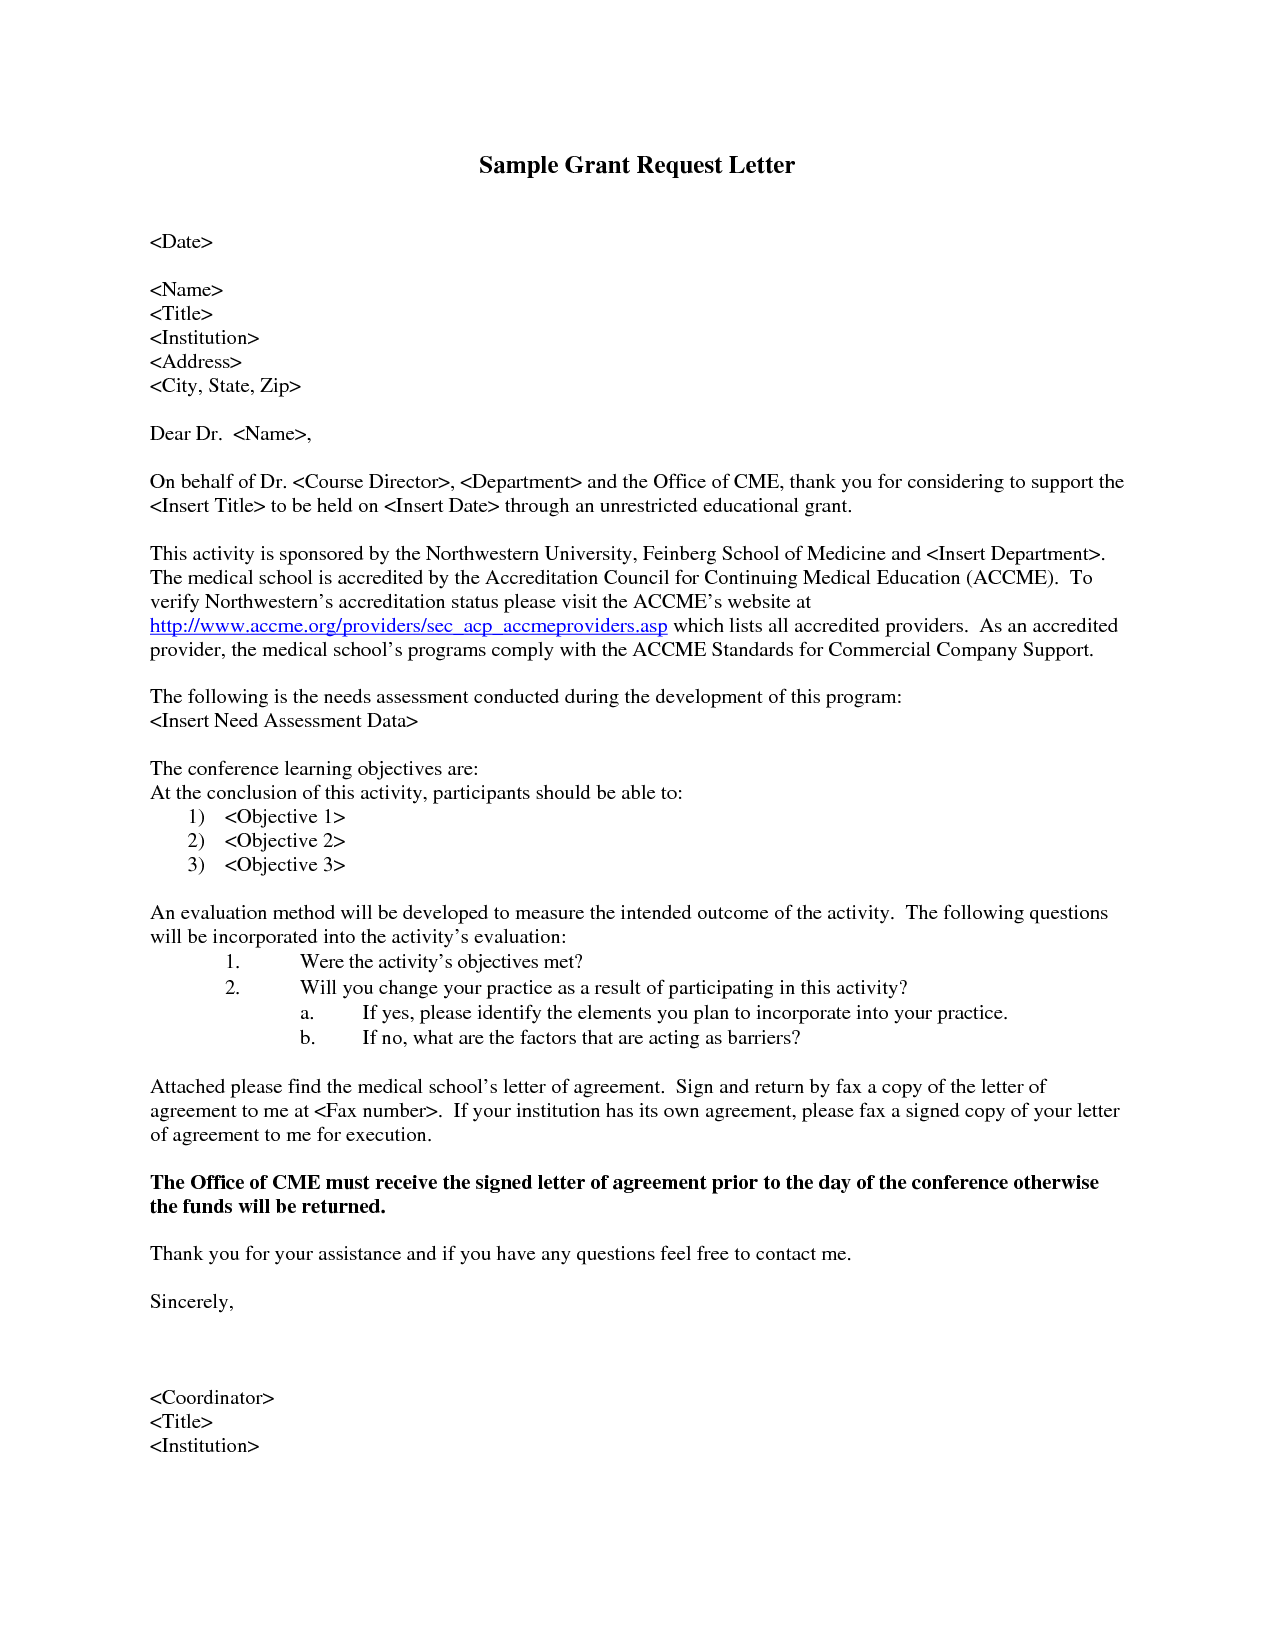 Grant request letter write a grant request letter private funding grant request letter write a grant request letter private funding is often available without a grant proposal by sending a well developed letter thecheapjerseys Image collections